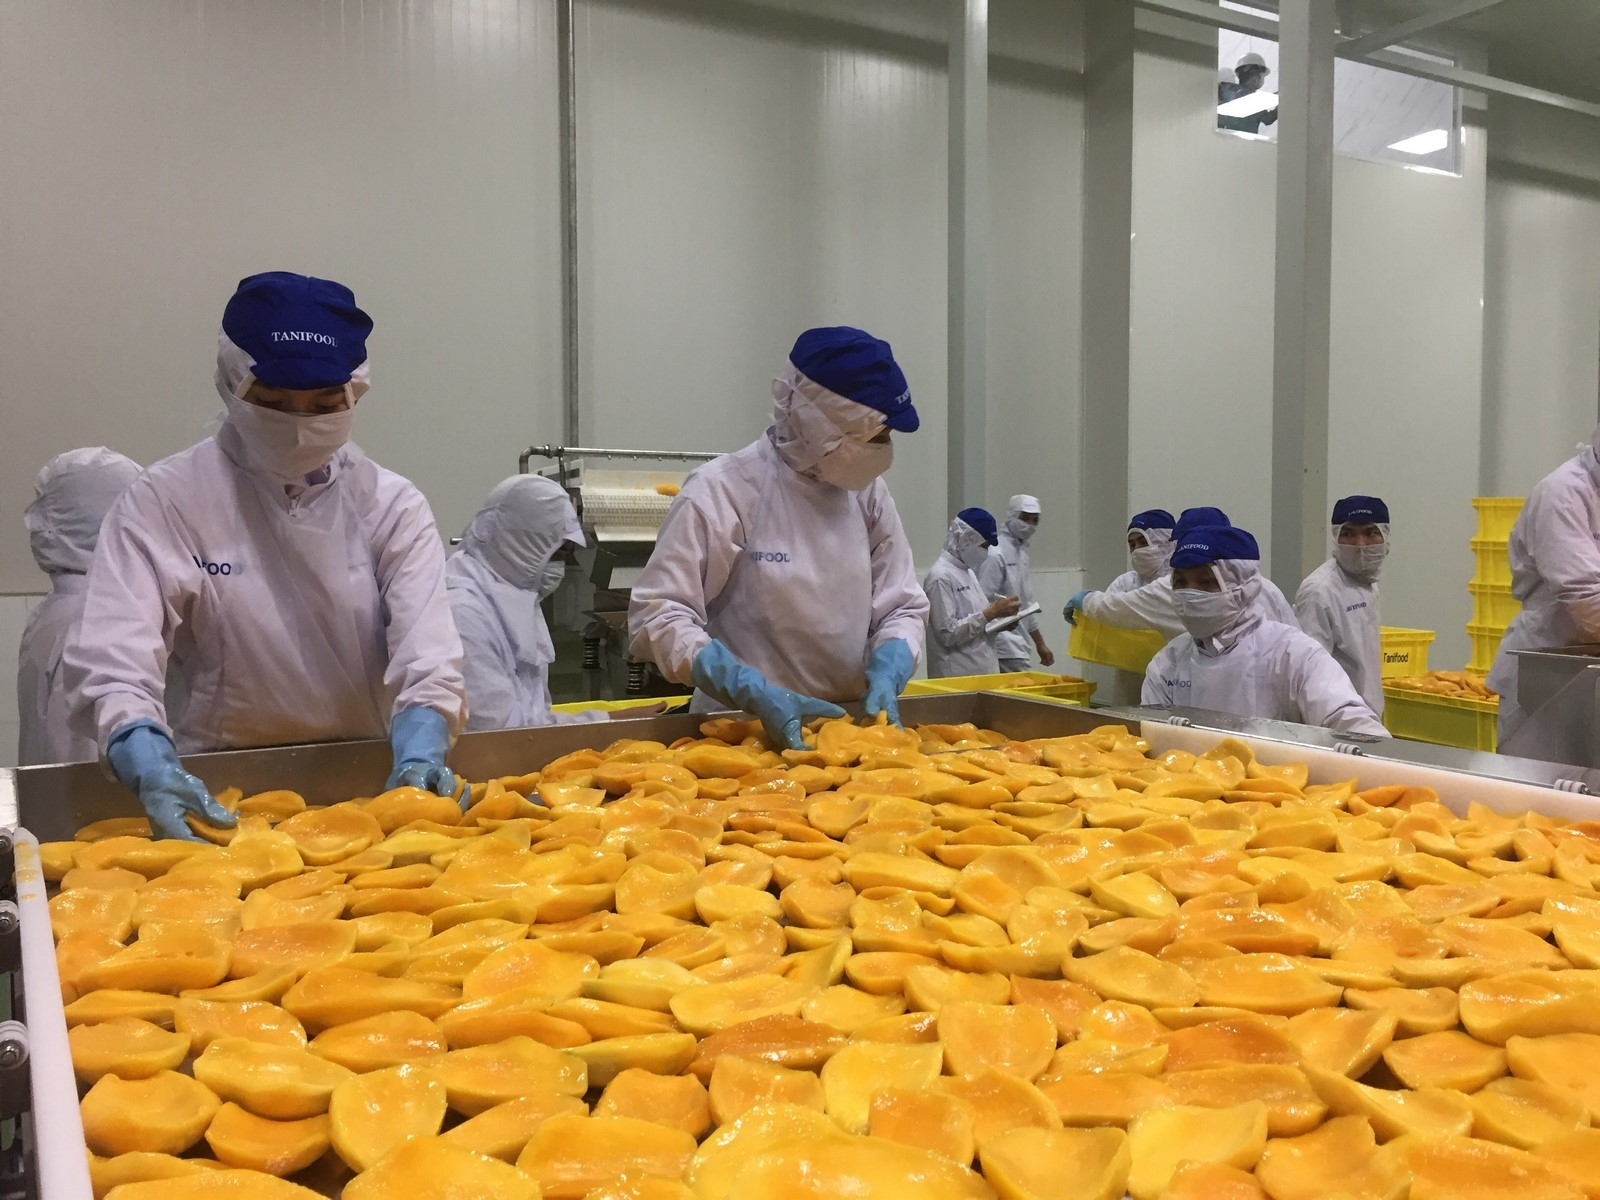 processing industry brightens january foreign trade picture